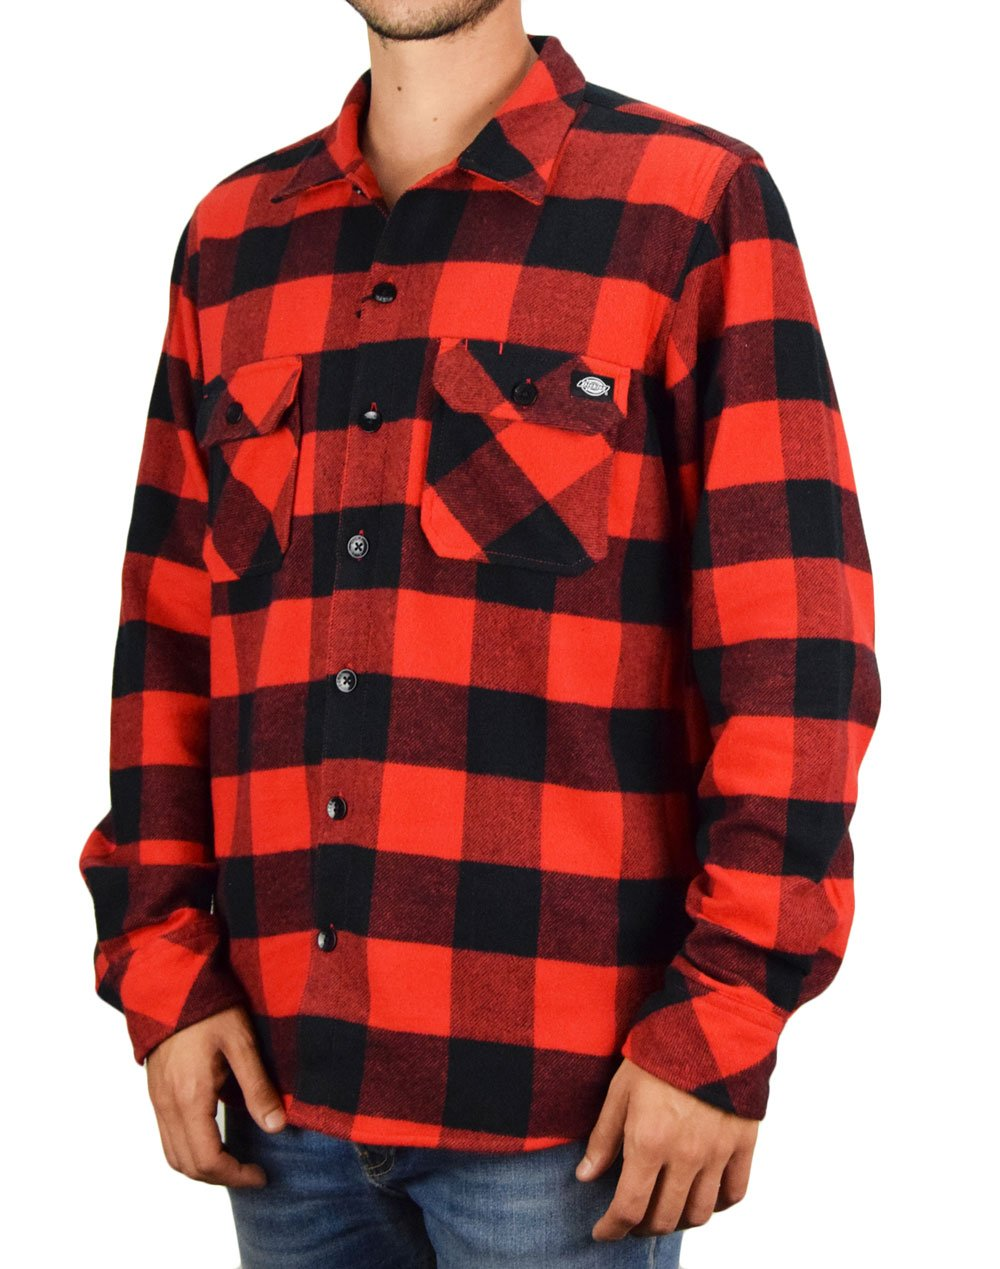 Dickies Sacramento Relaxed Shirt (DK0A4X8NRDX1) Red/Black